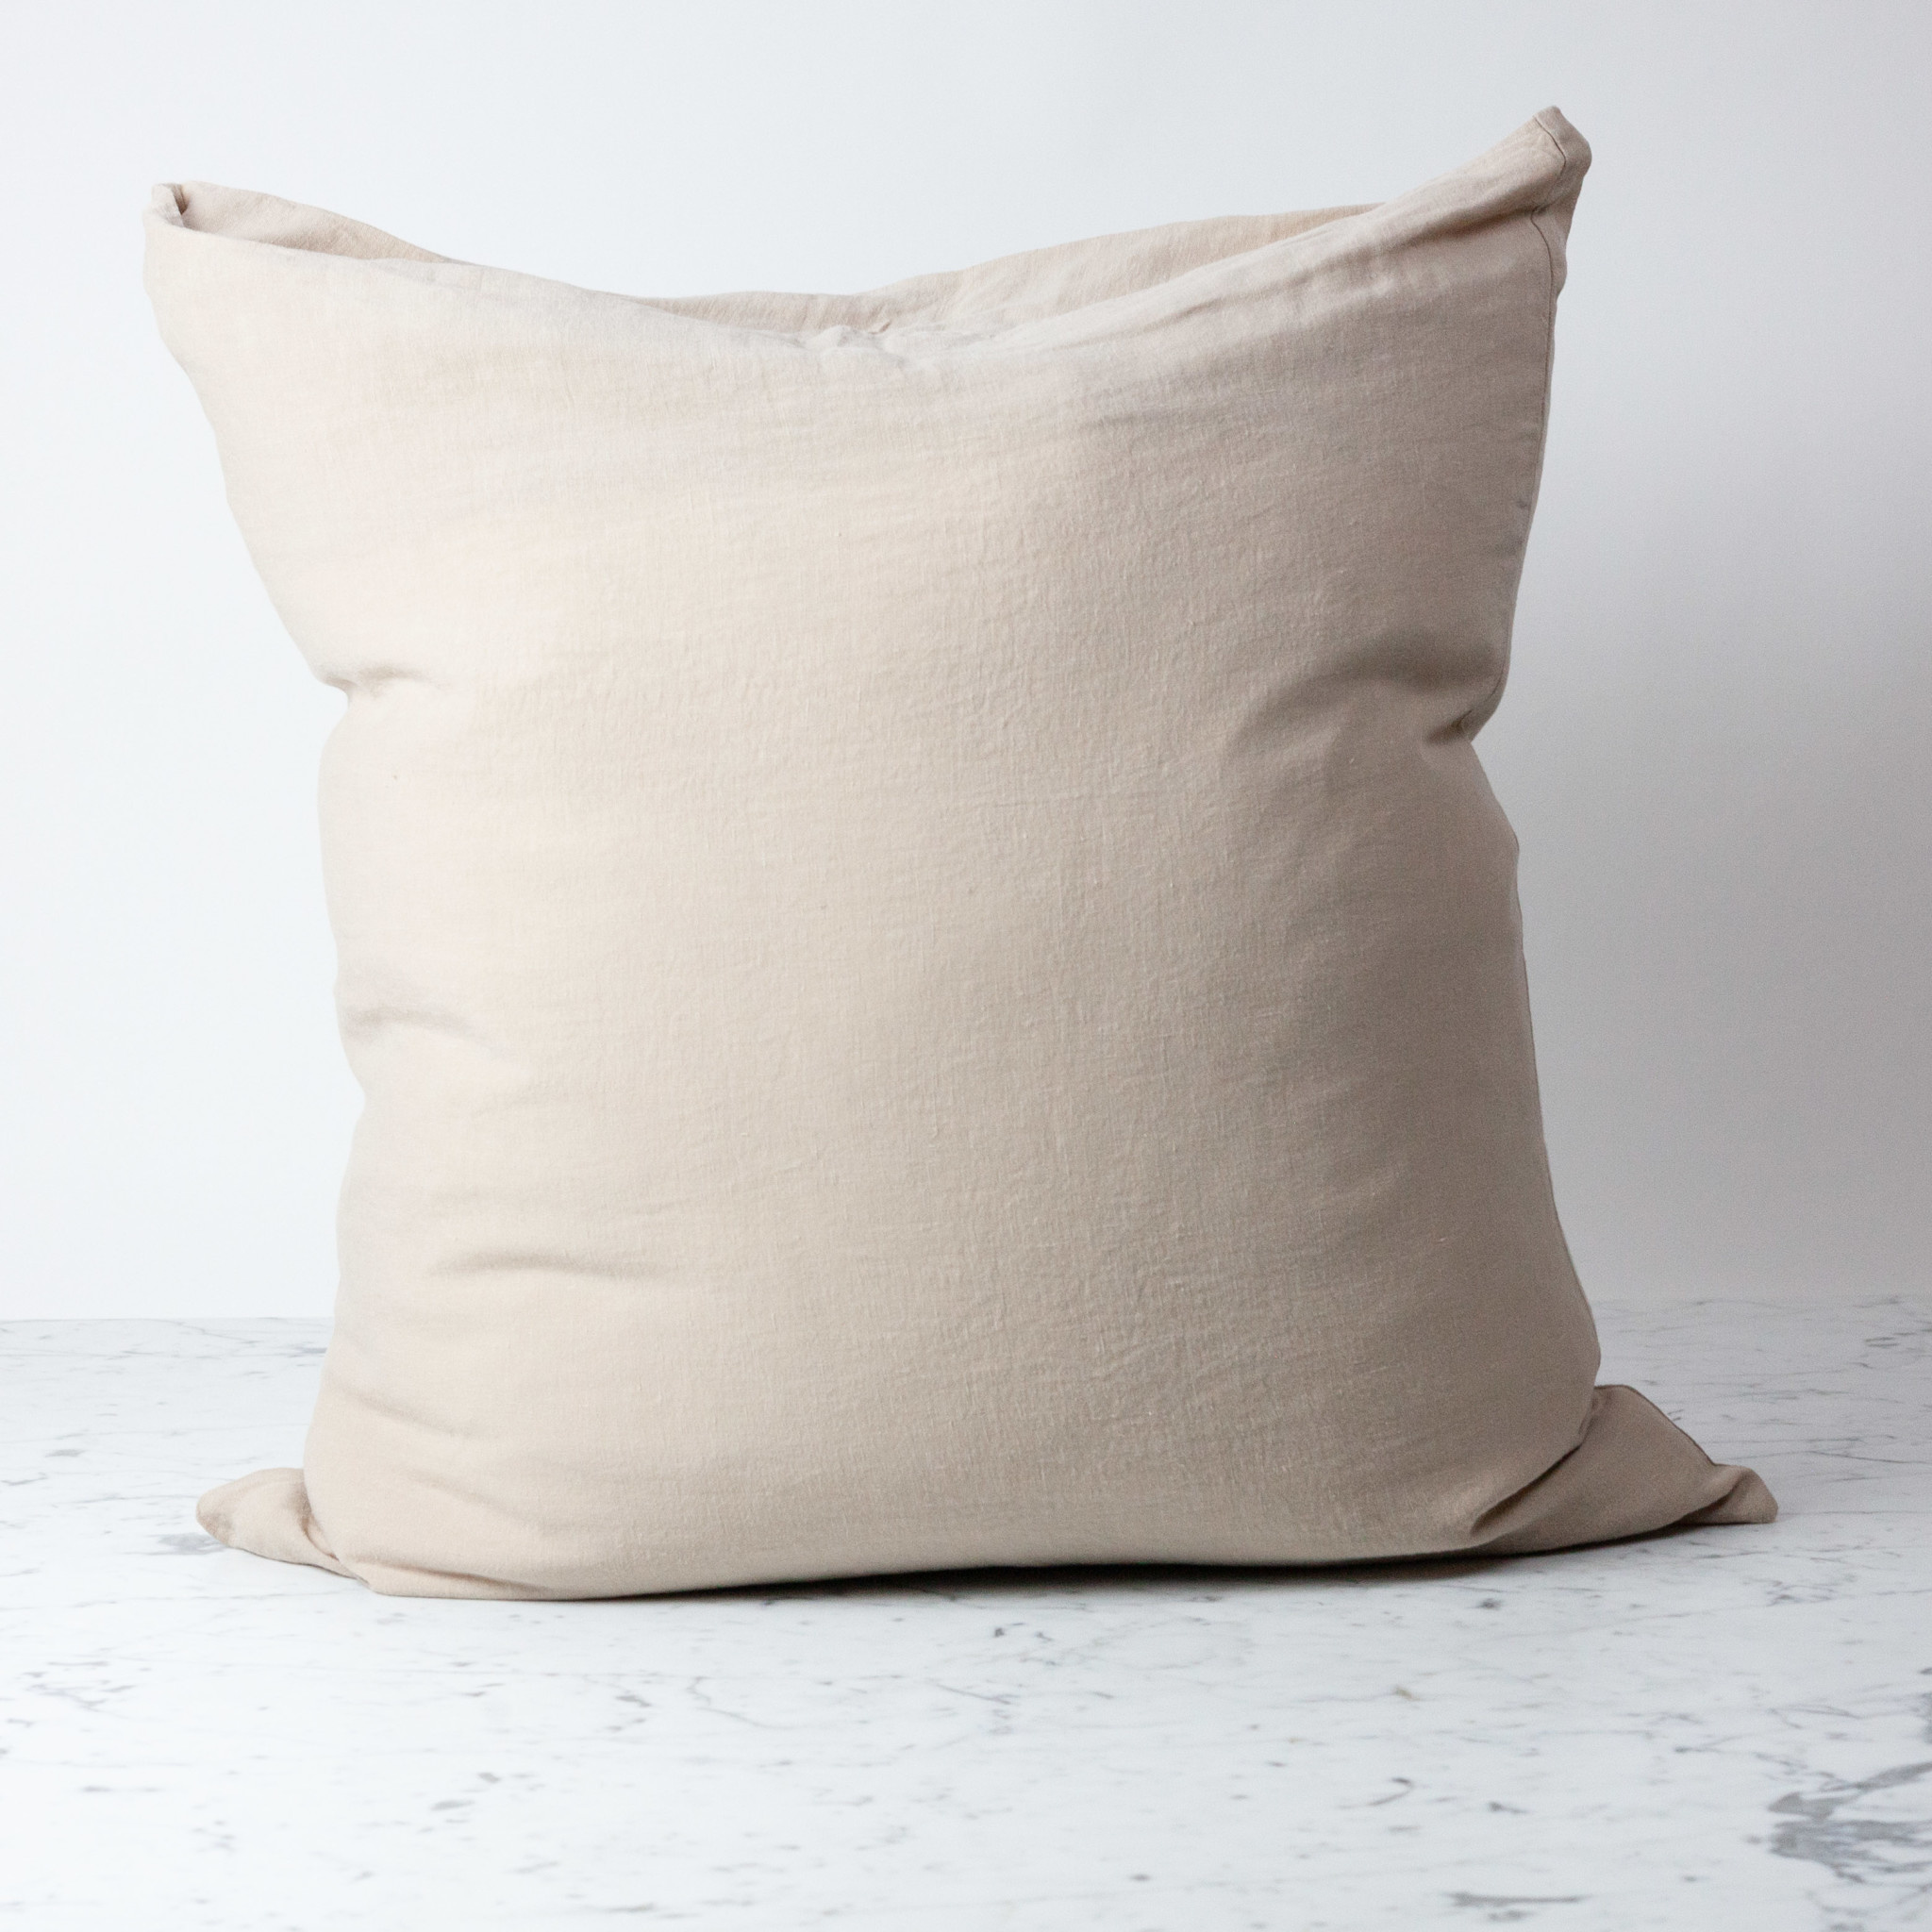 Washed French Linen Pillow Cover with Down Insert - Sand - 26 x 26""